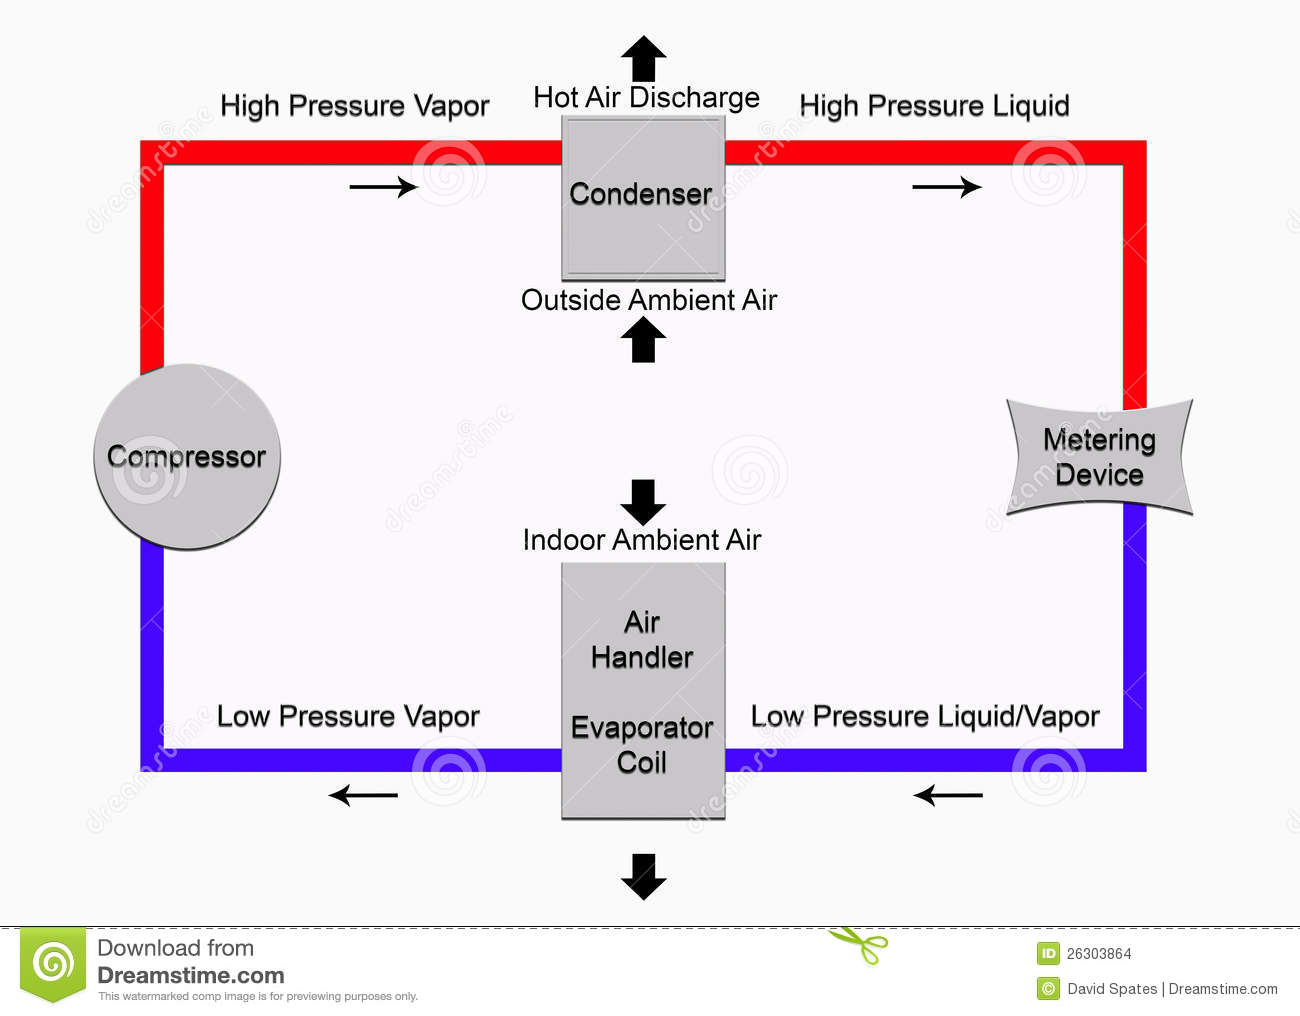 refrigeration cycle found in air conditioning and heat pump systems #3302C9